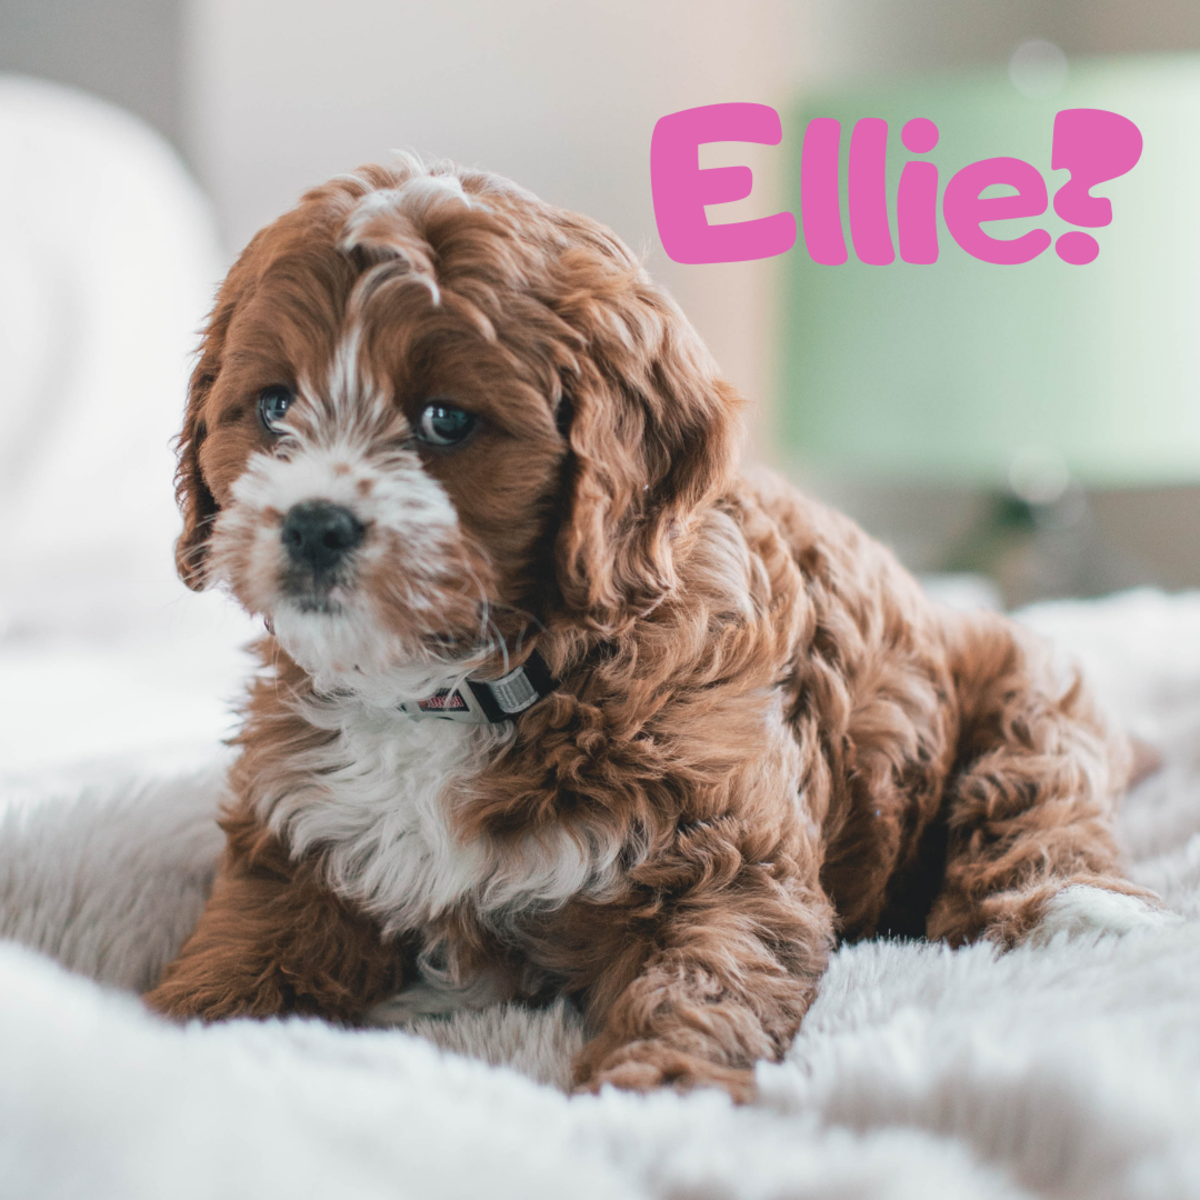 Is she an Ellie?